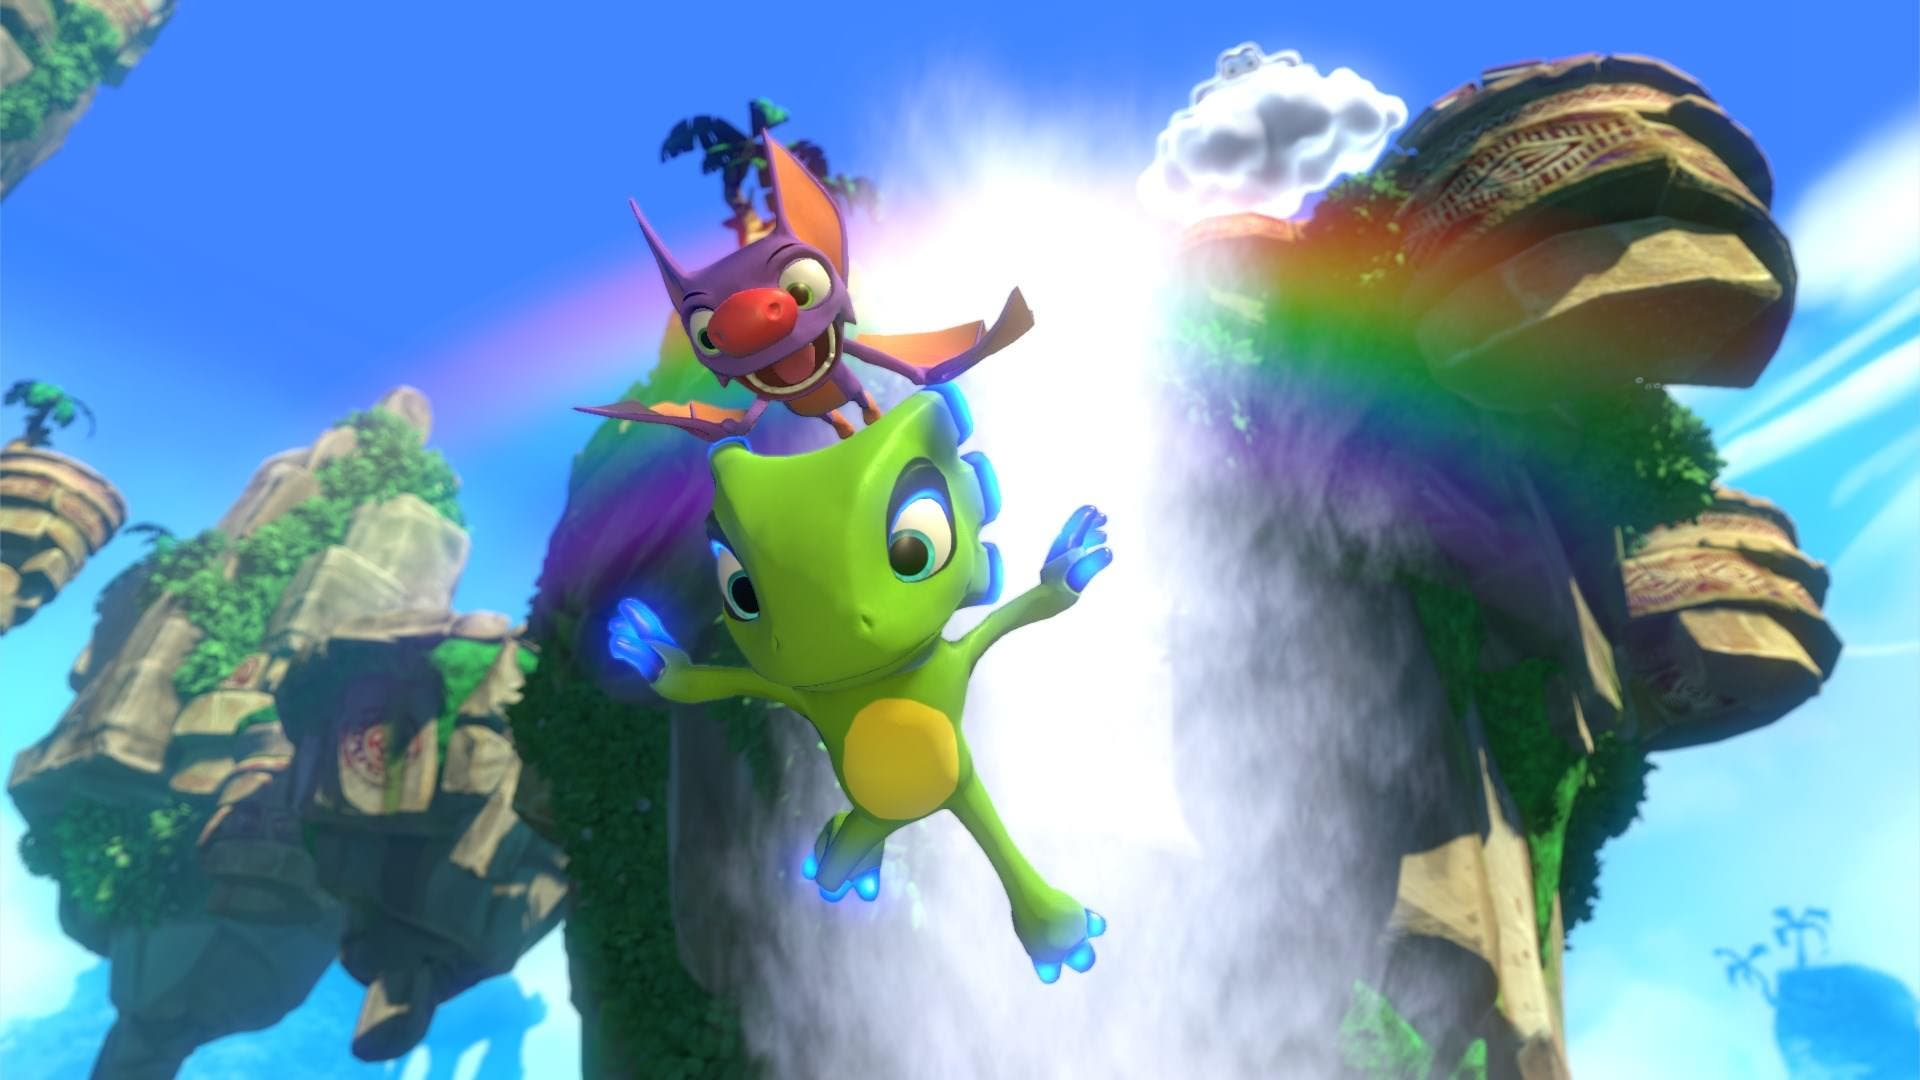 [Act.] La pre-carga de Yooka-Laylee ya está disponible en la eShop de Switch